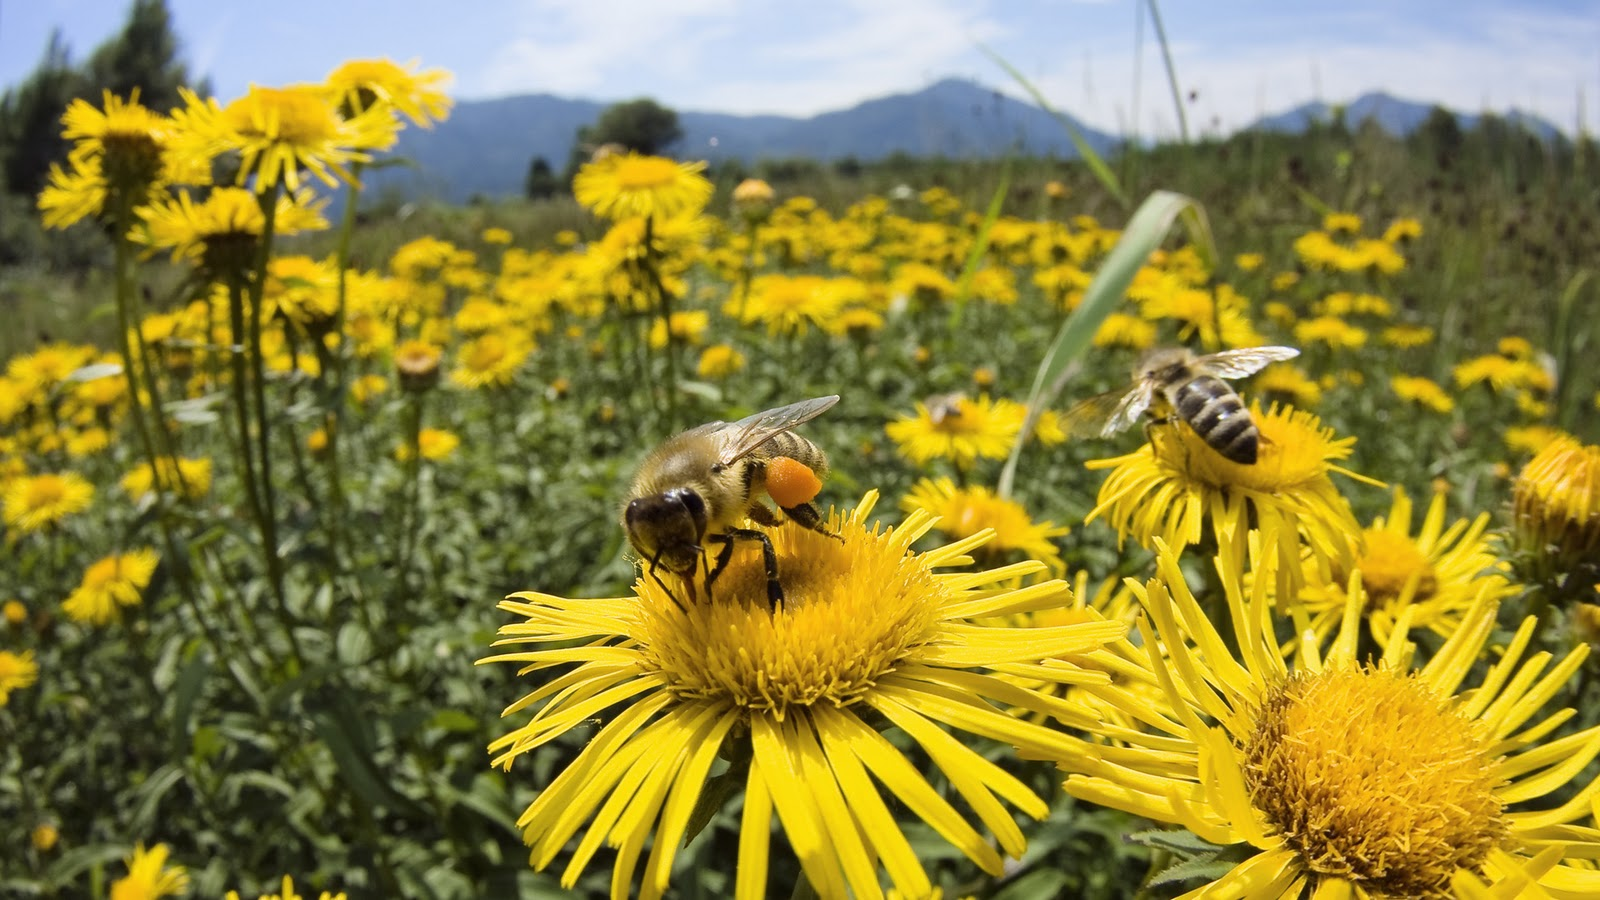 The Bee Is More Honoured Than Other Animals